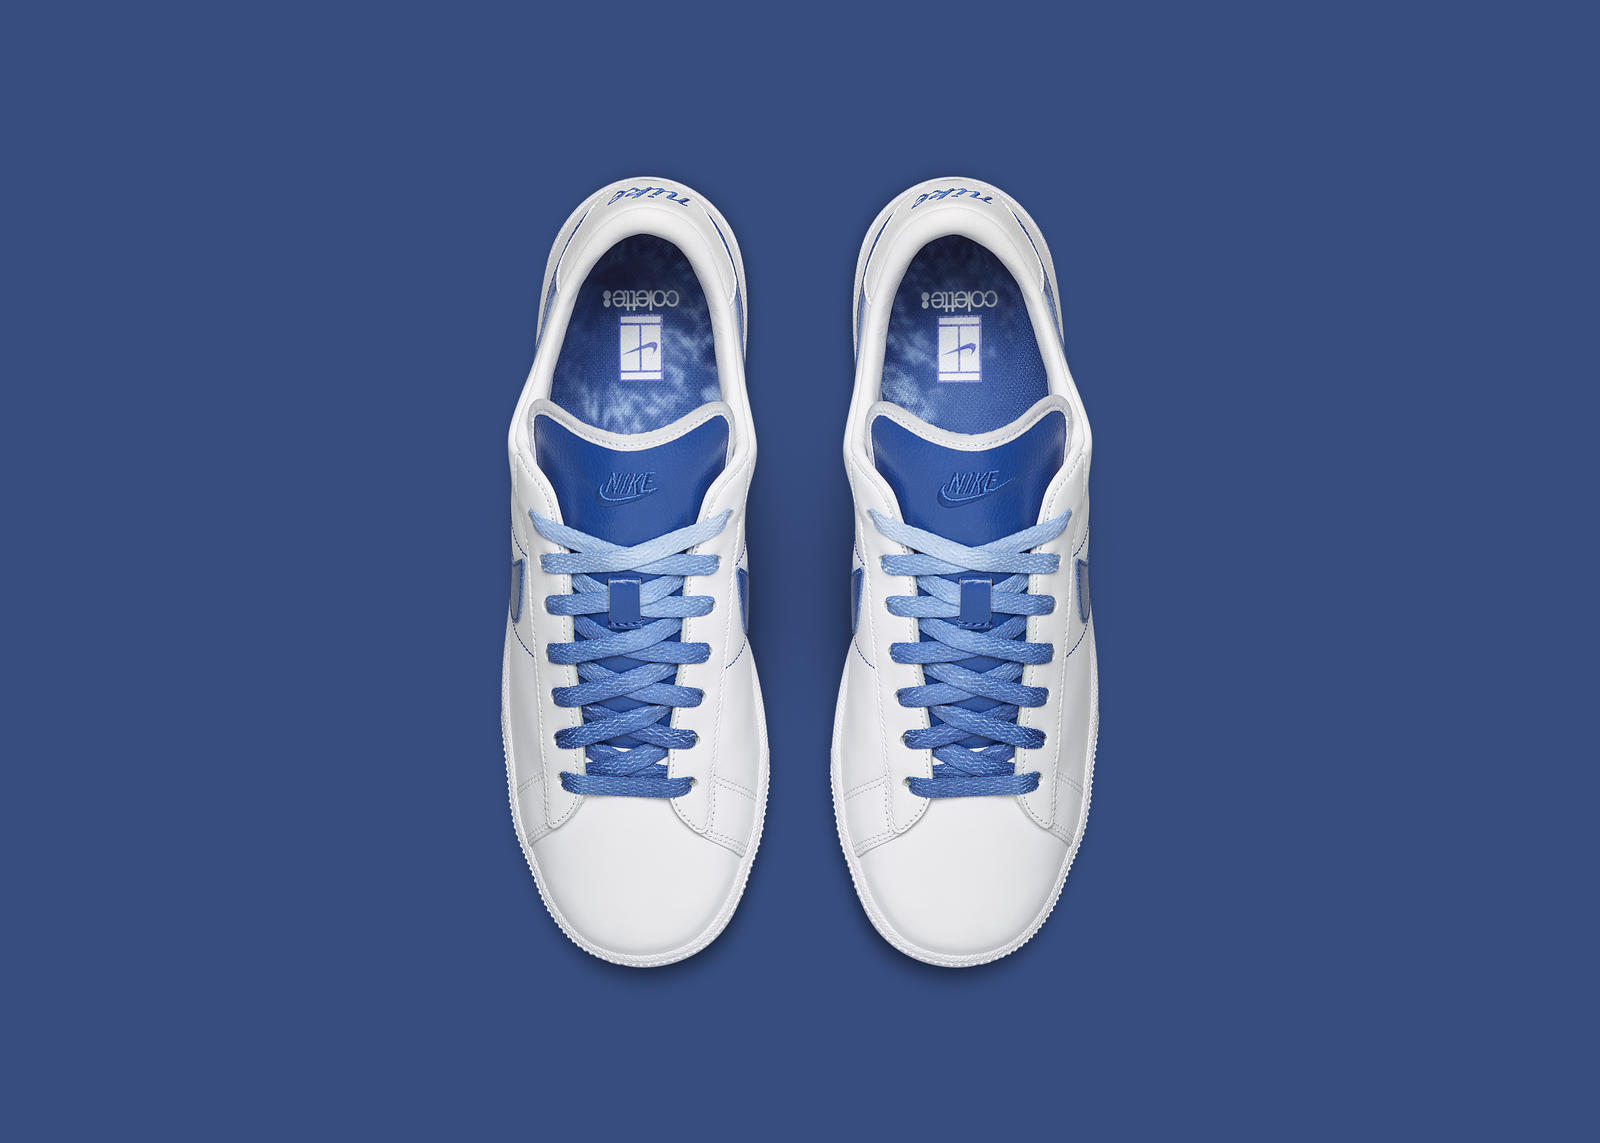 Nikecourt tennis classic x colette 2 rectangle 1600